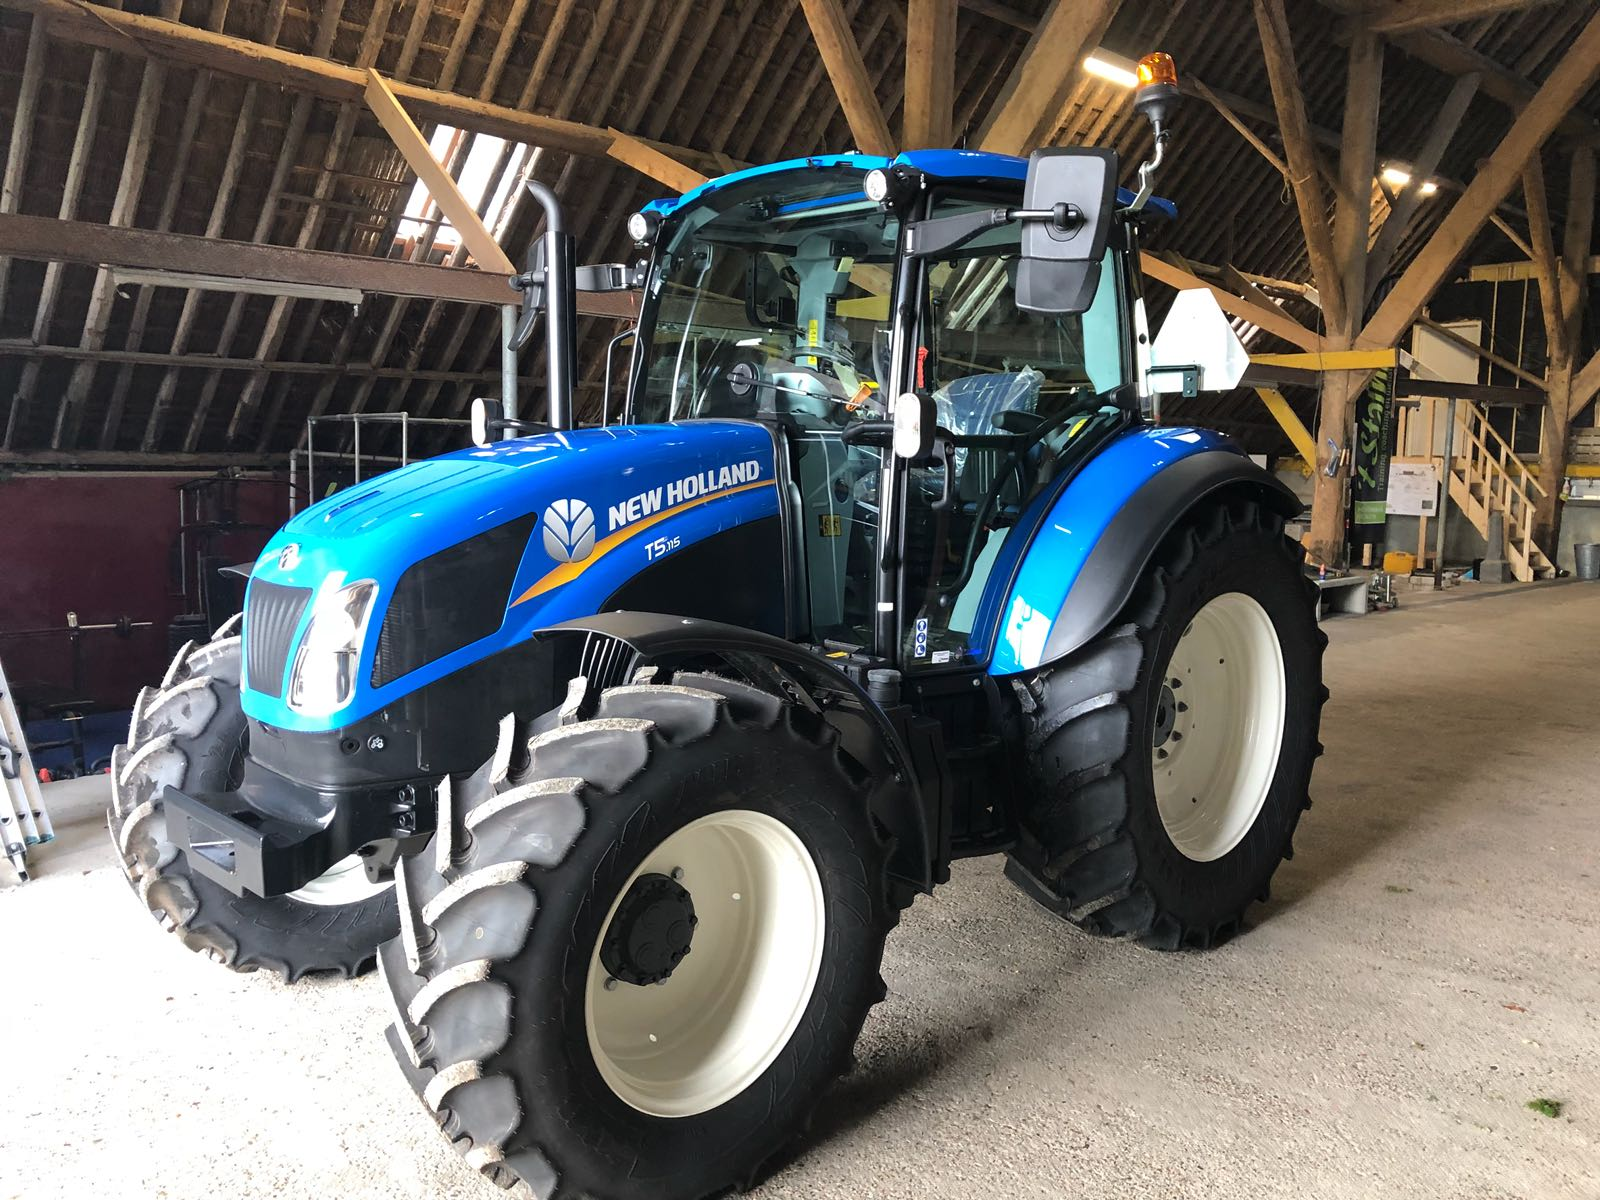 New Holland Trekker Stalhus